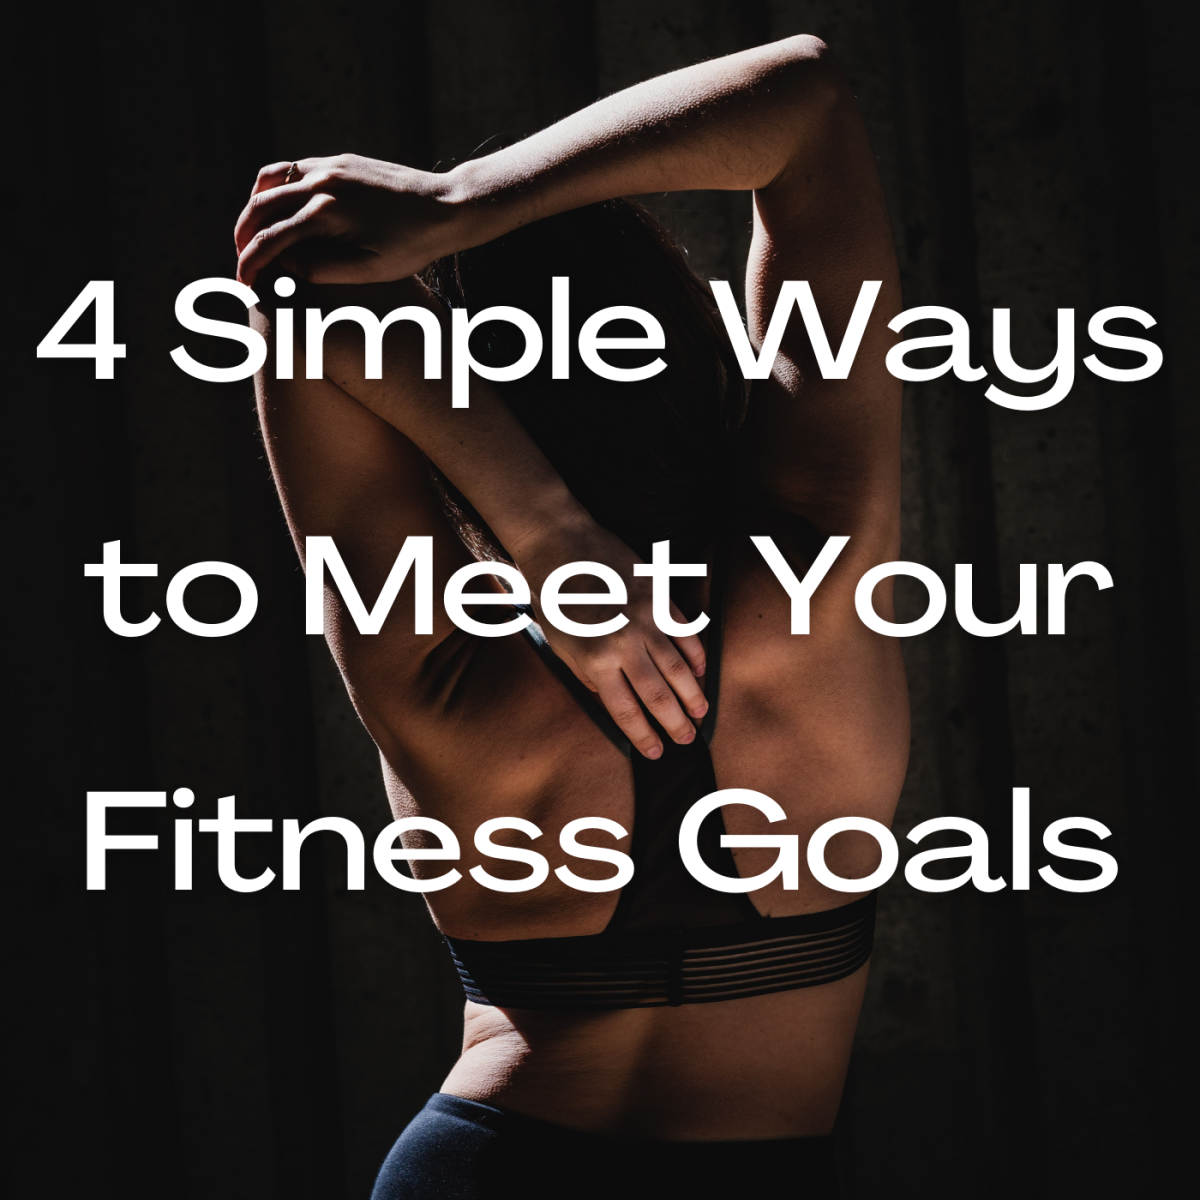 Prioritizing your fitness can be fun.